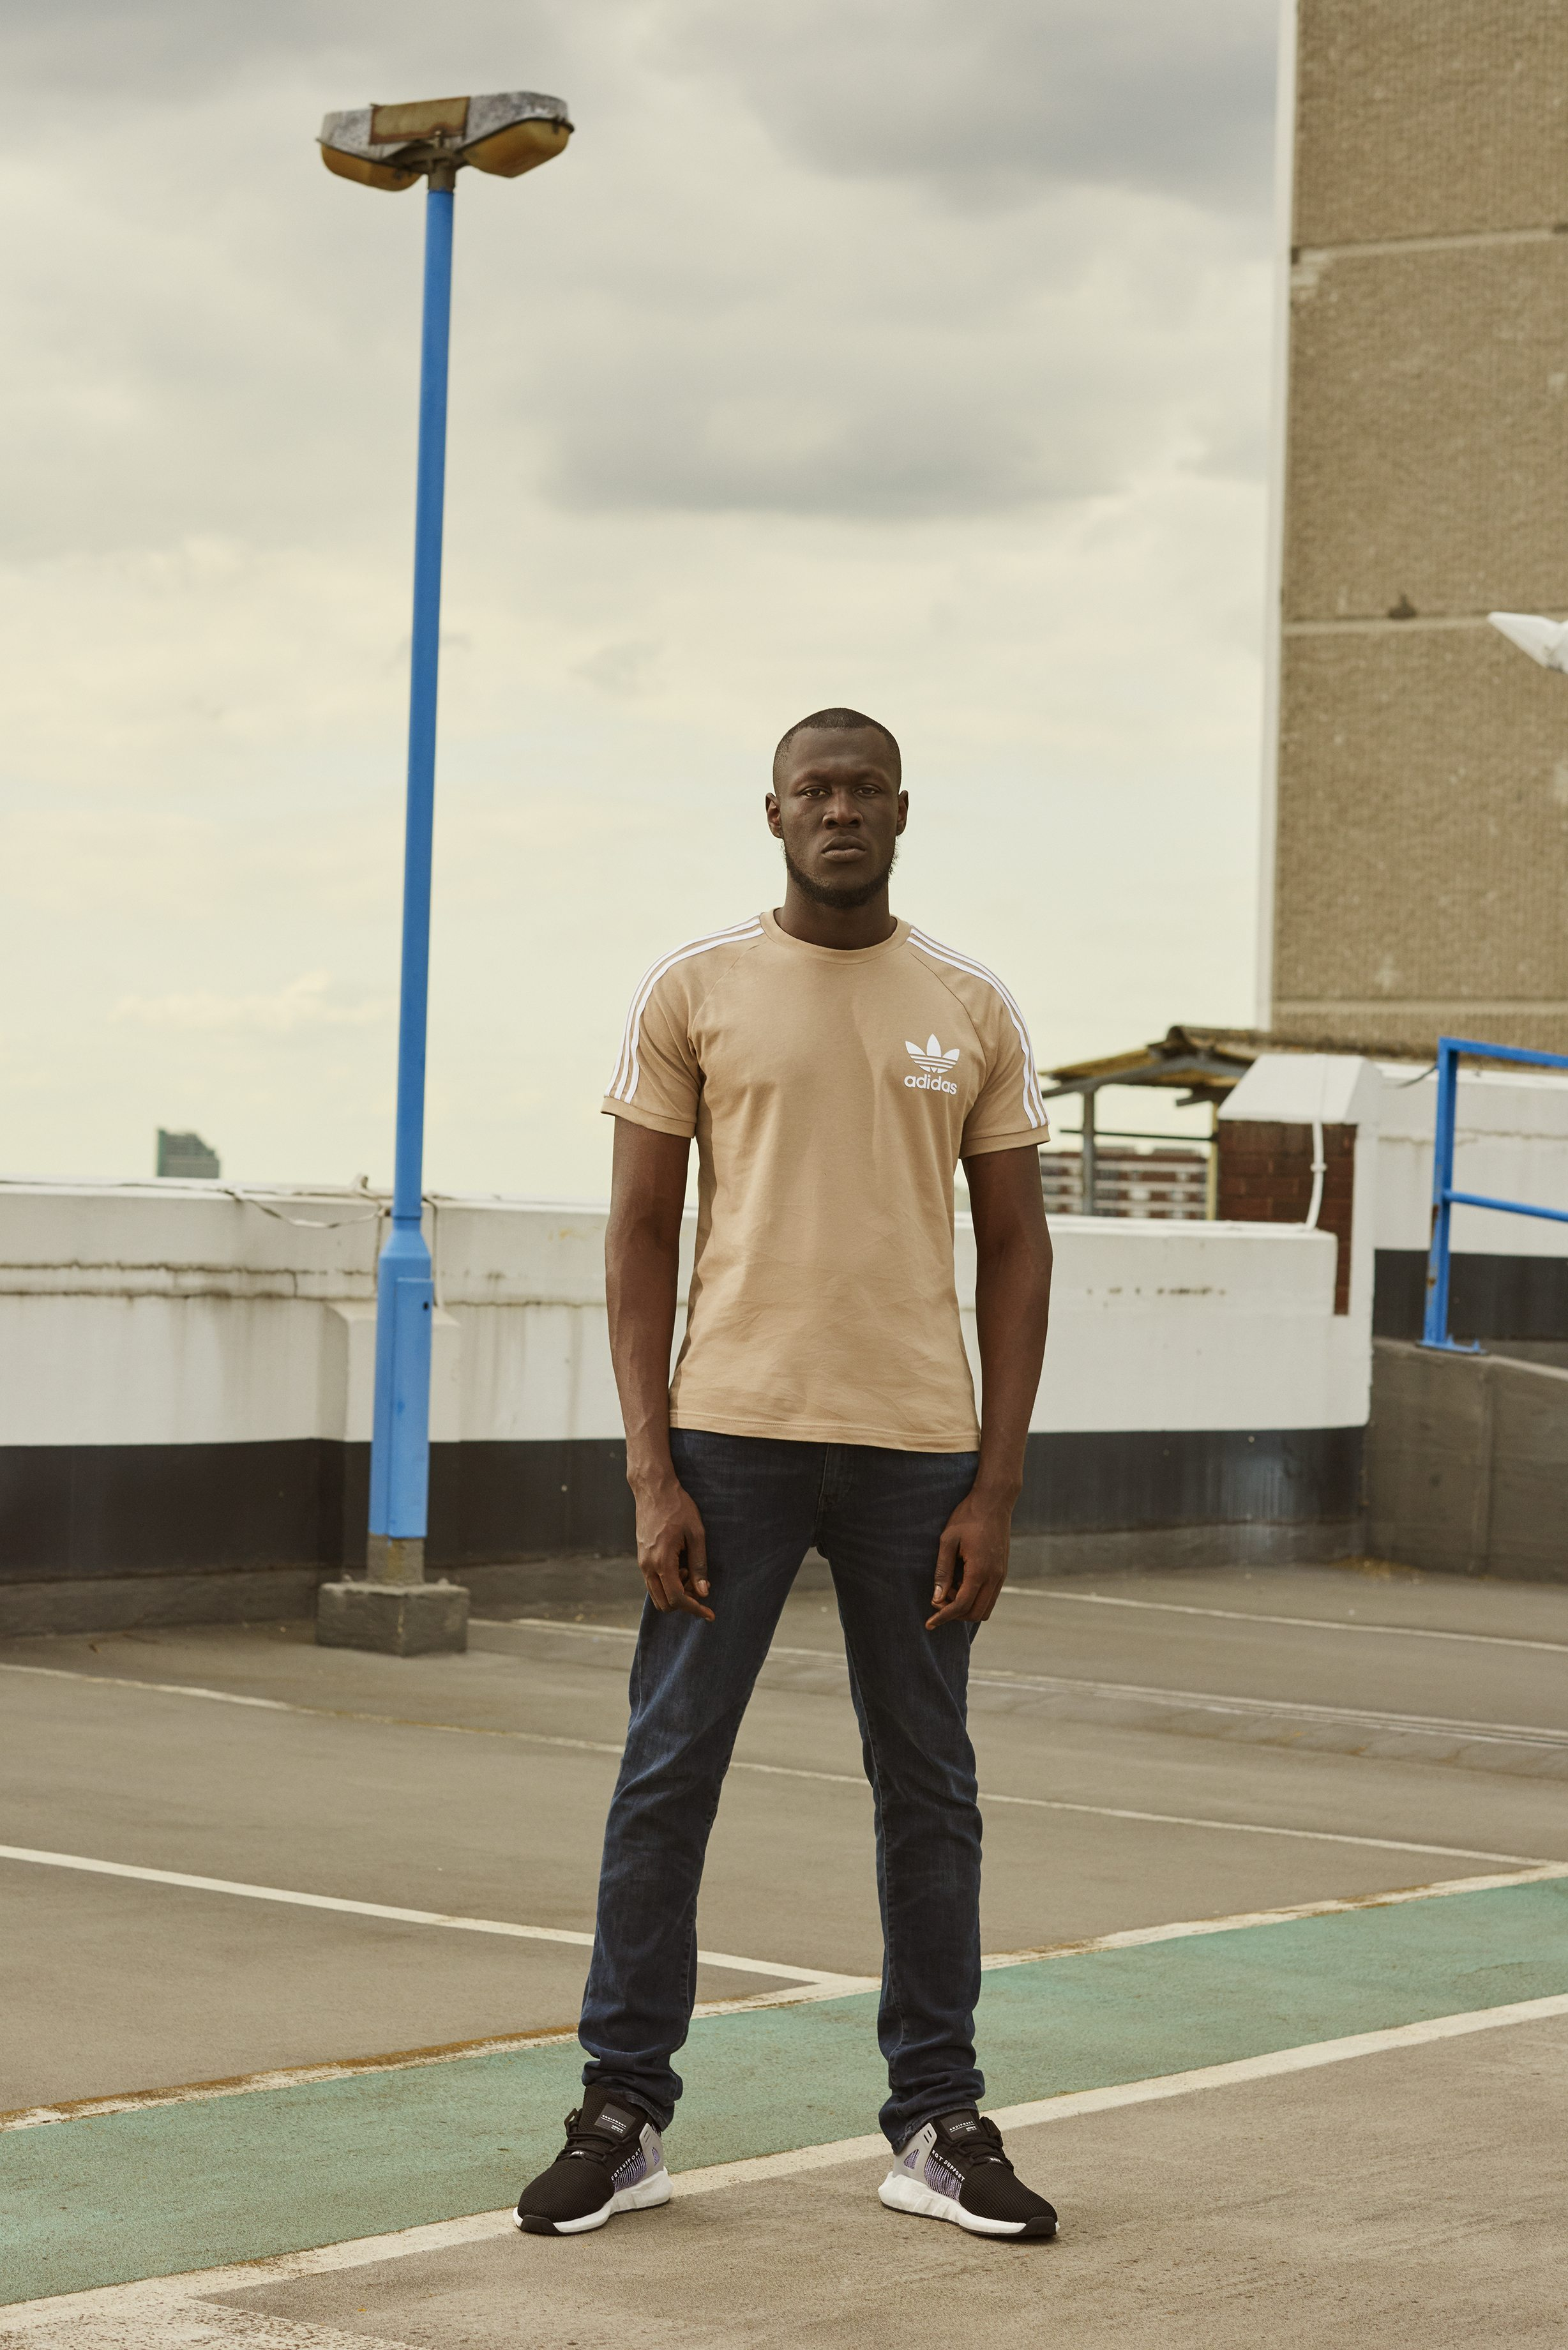 Stormzy in the adidas EQT Support 93/17